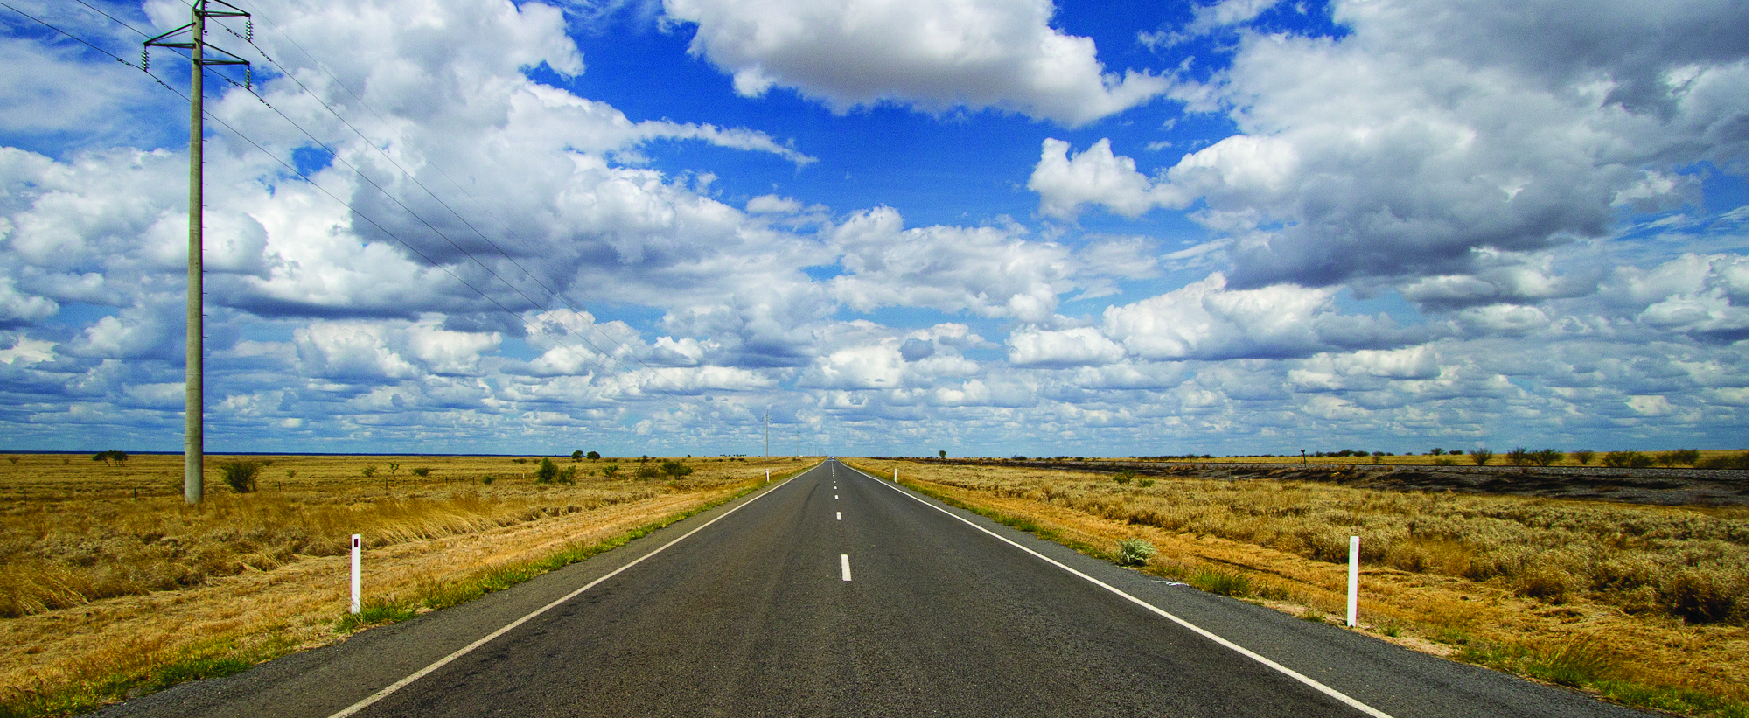 This image looks down the middle of an open road with clouds in the sky and open landscape on either side of the road.